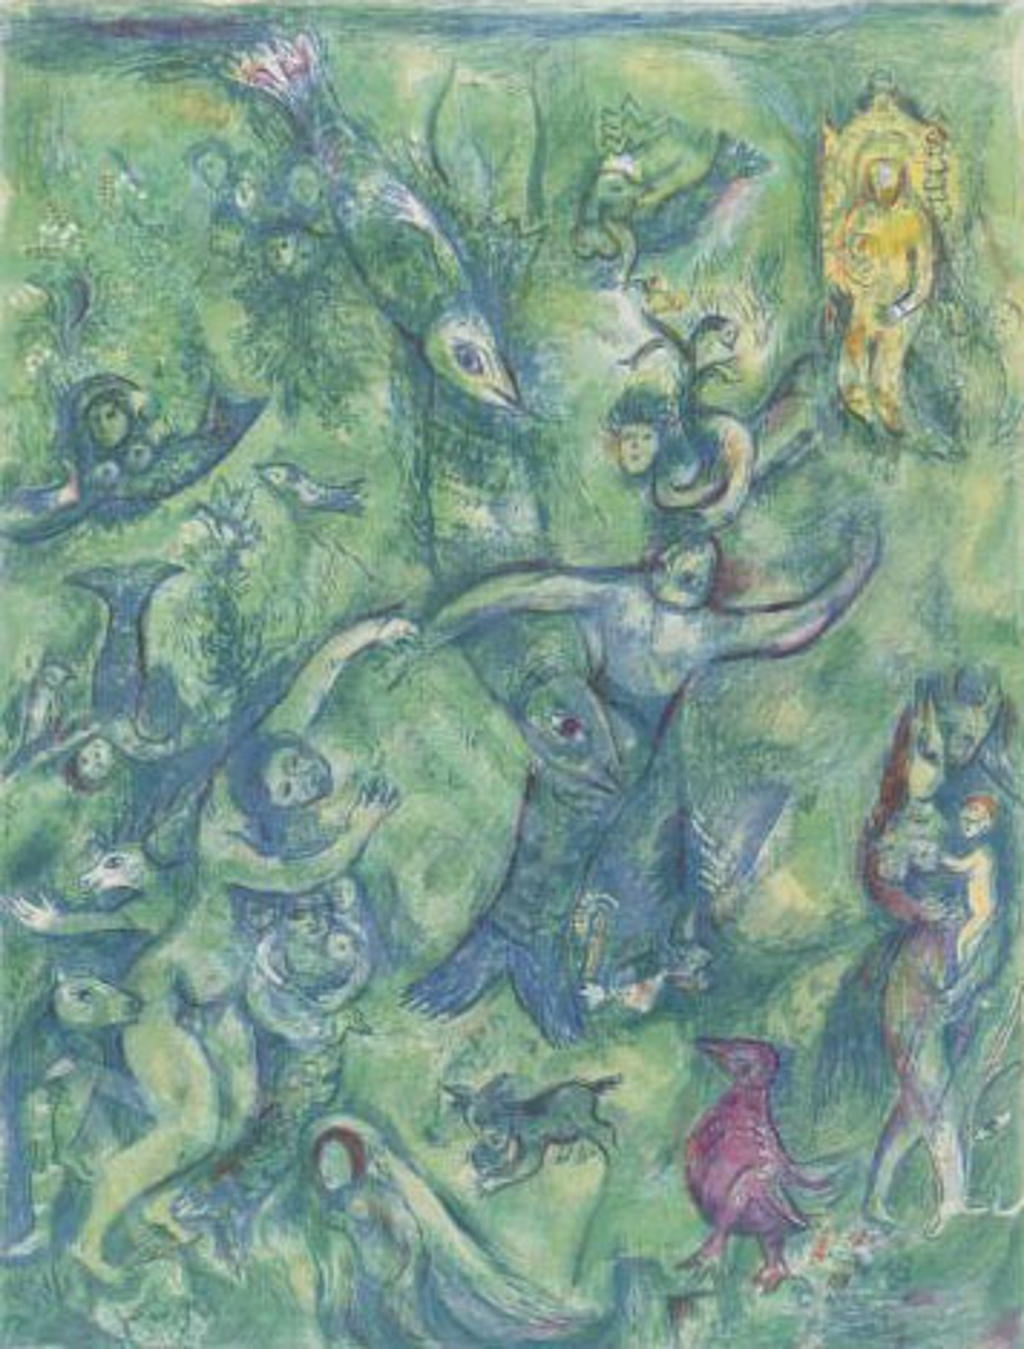 Arabian Nights Book Lithograph Plate 9 by Marc Chagall (1887 - 1985)